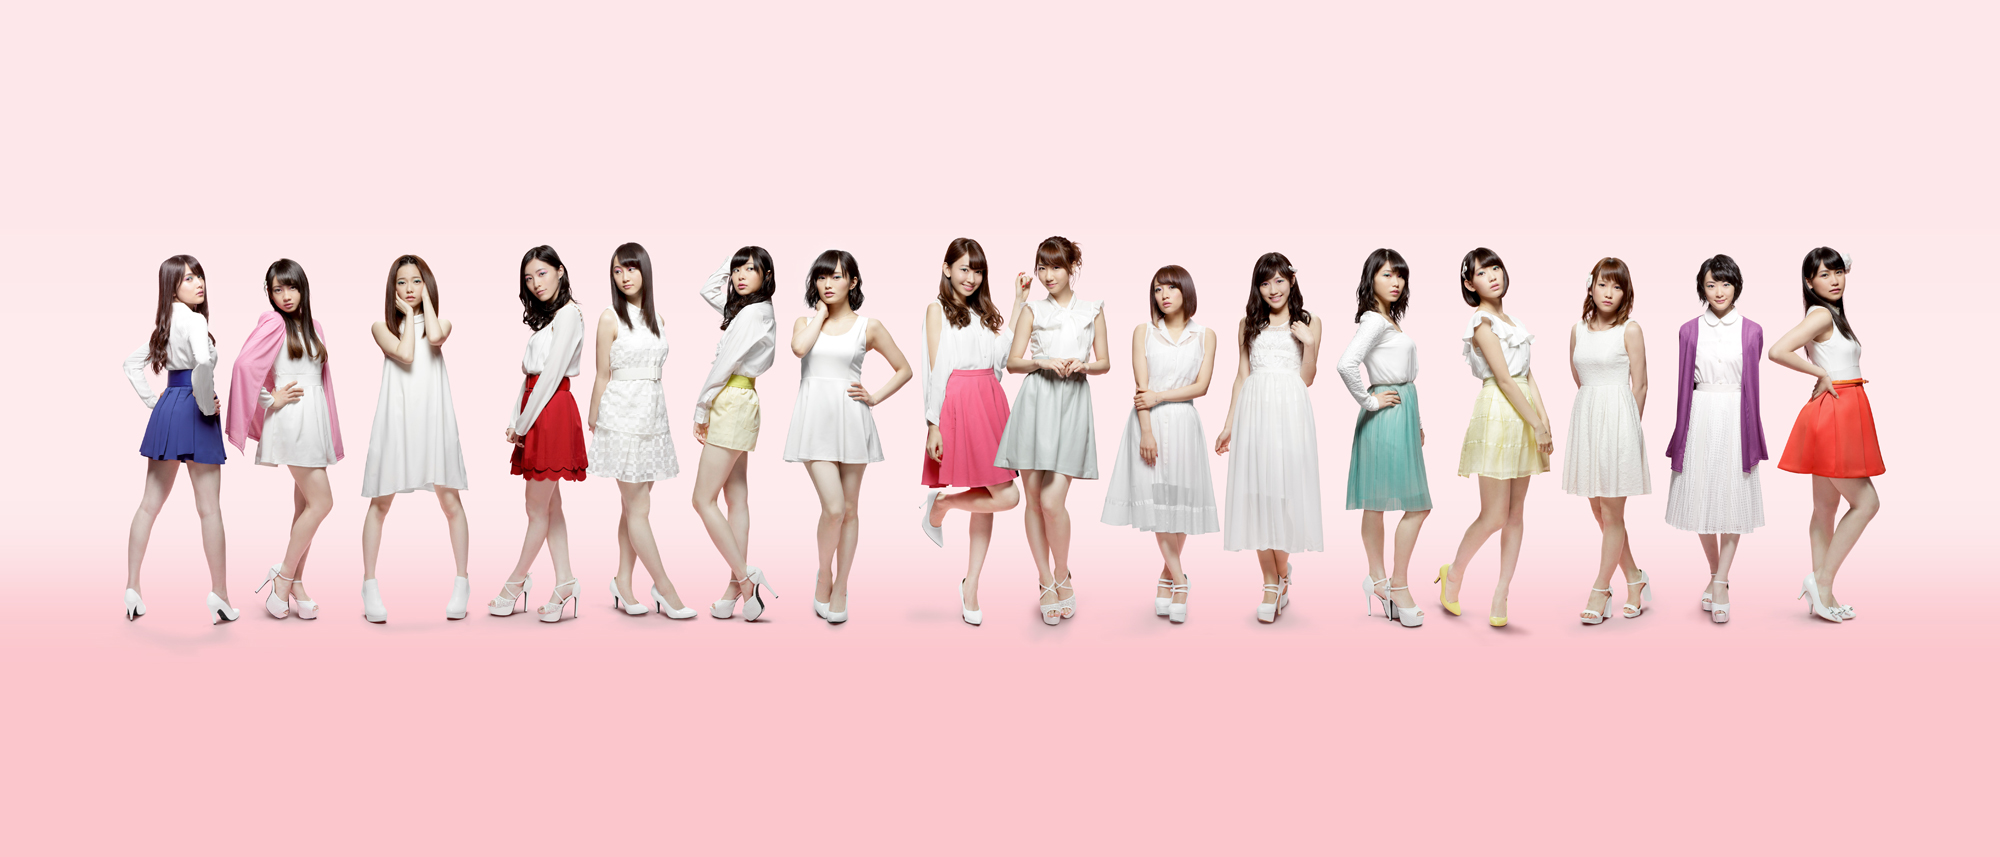 http://www.music-lounge.jp/v2/common/im/uf/articl/201503/akb48/main.jpg